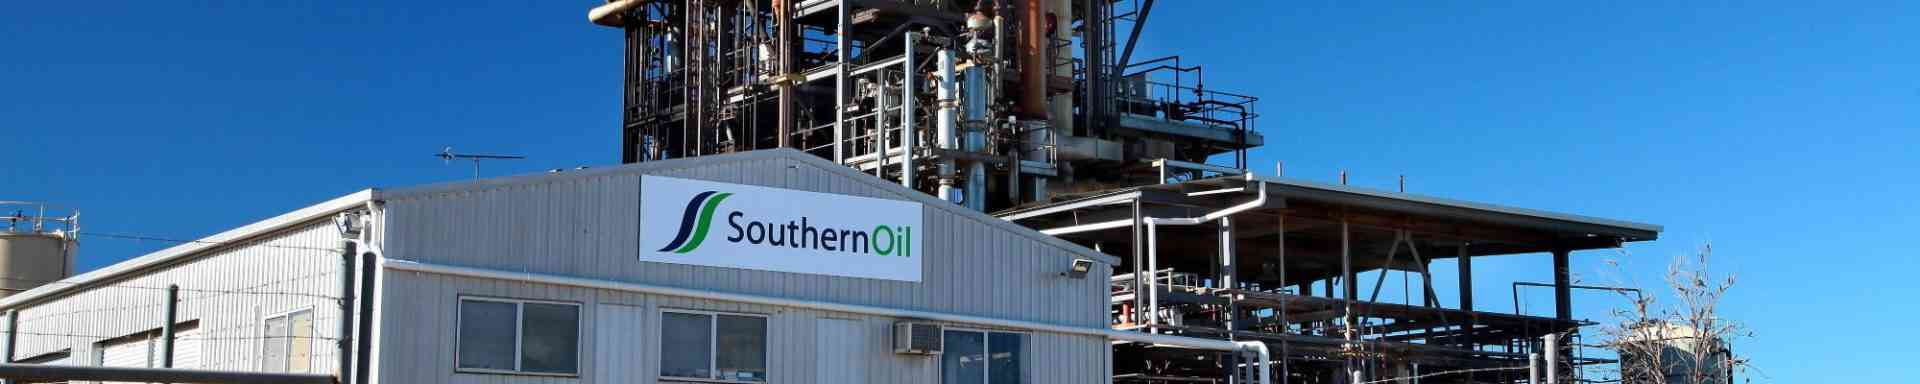 southern oil banner